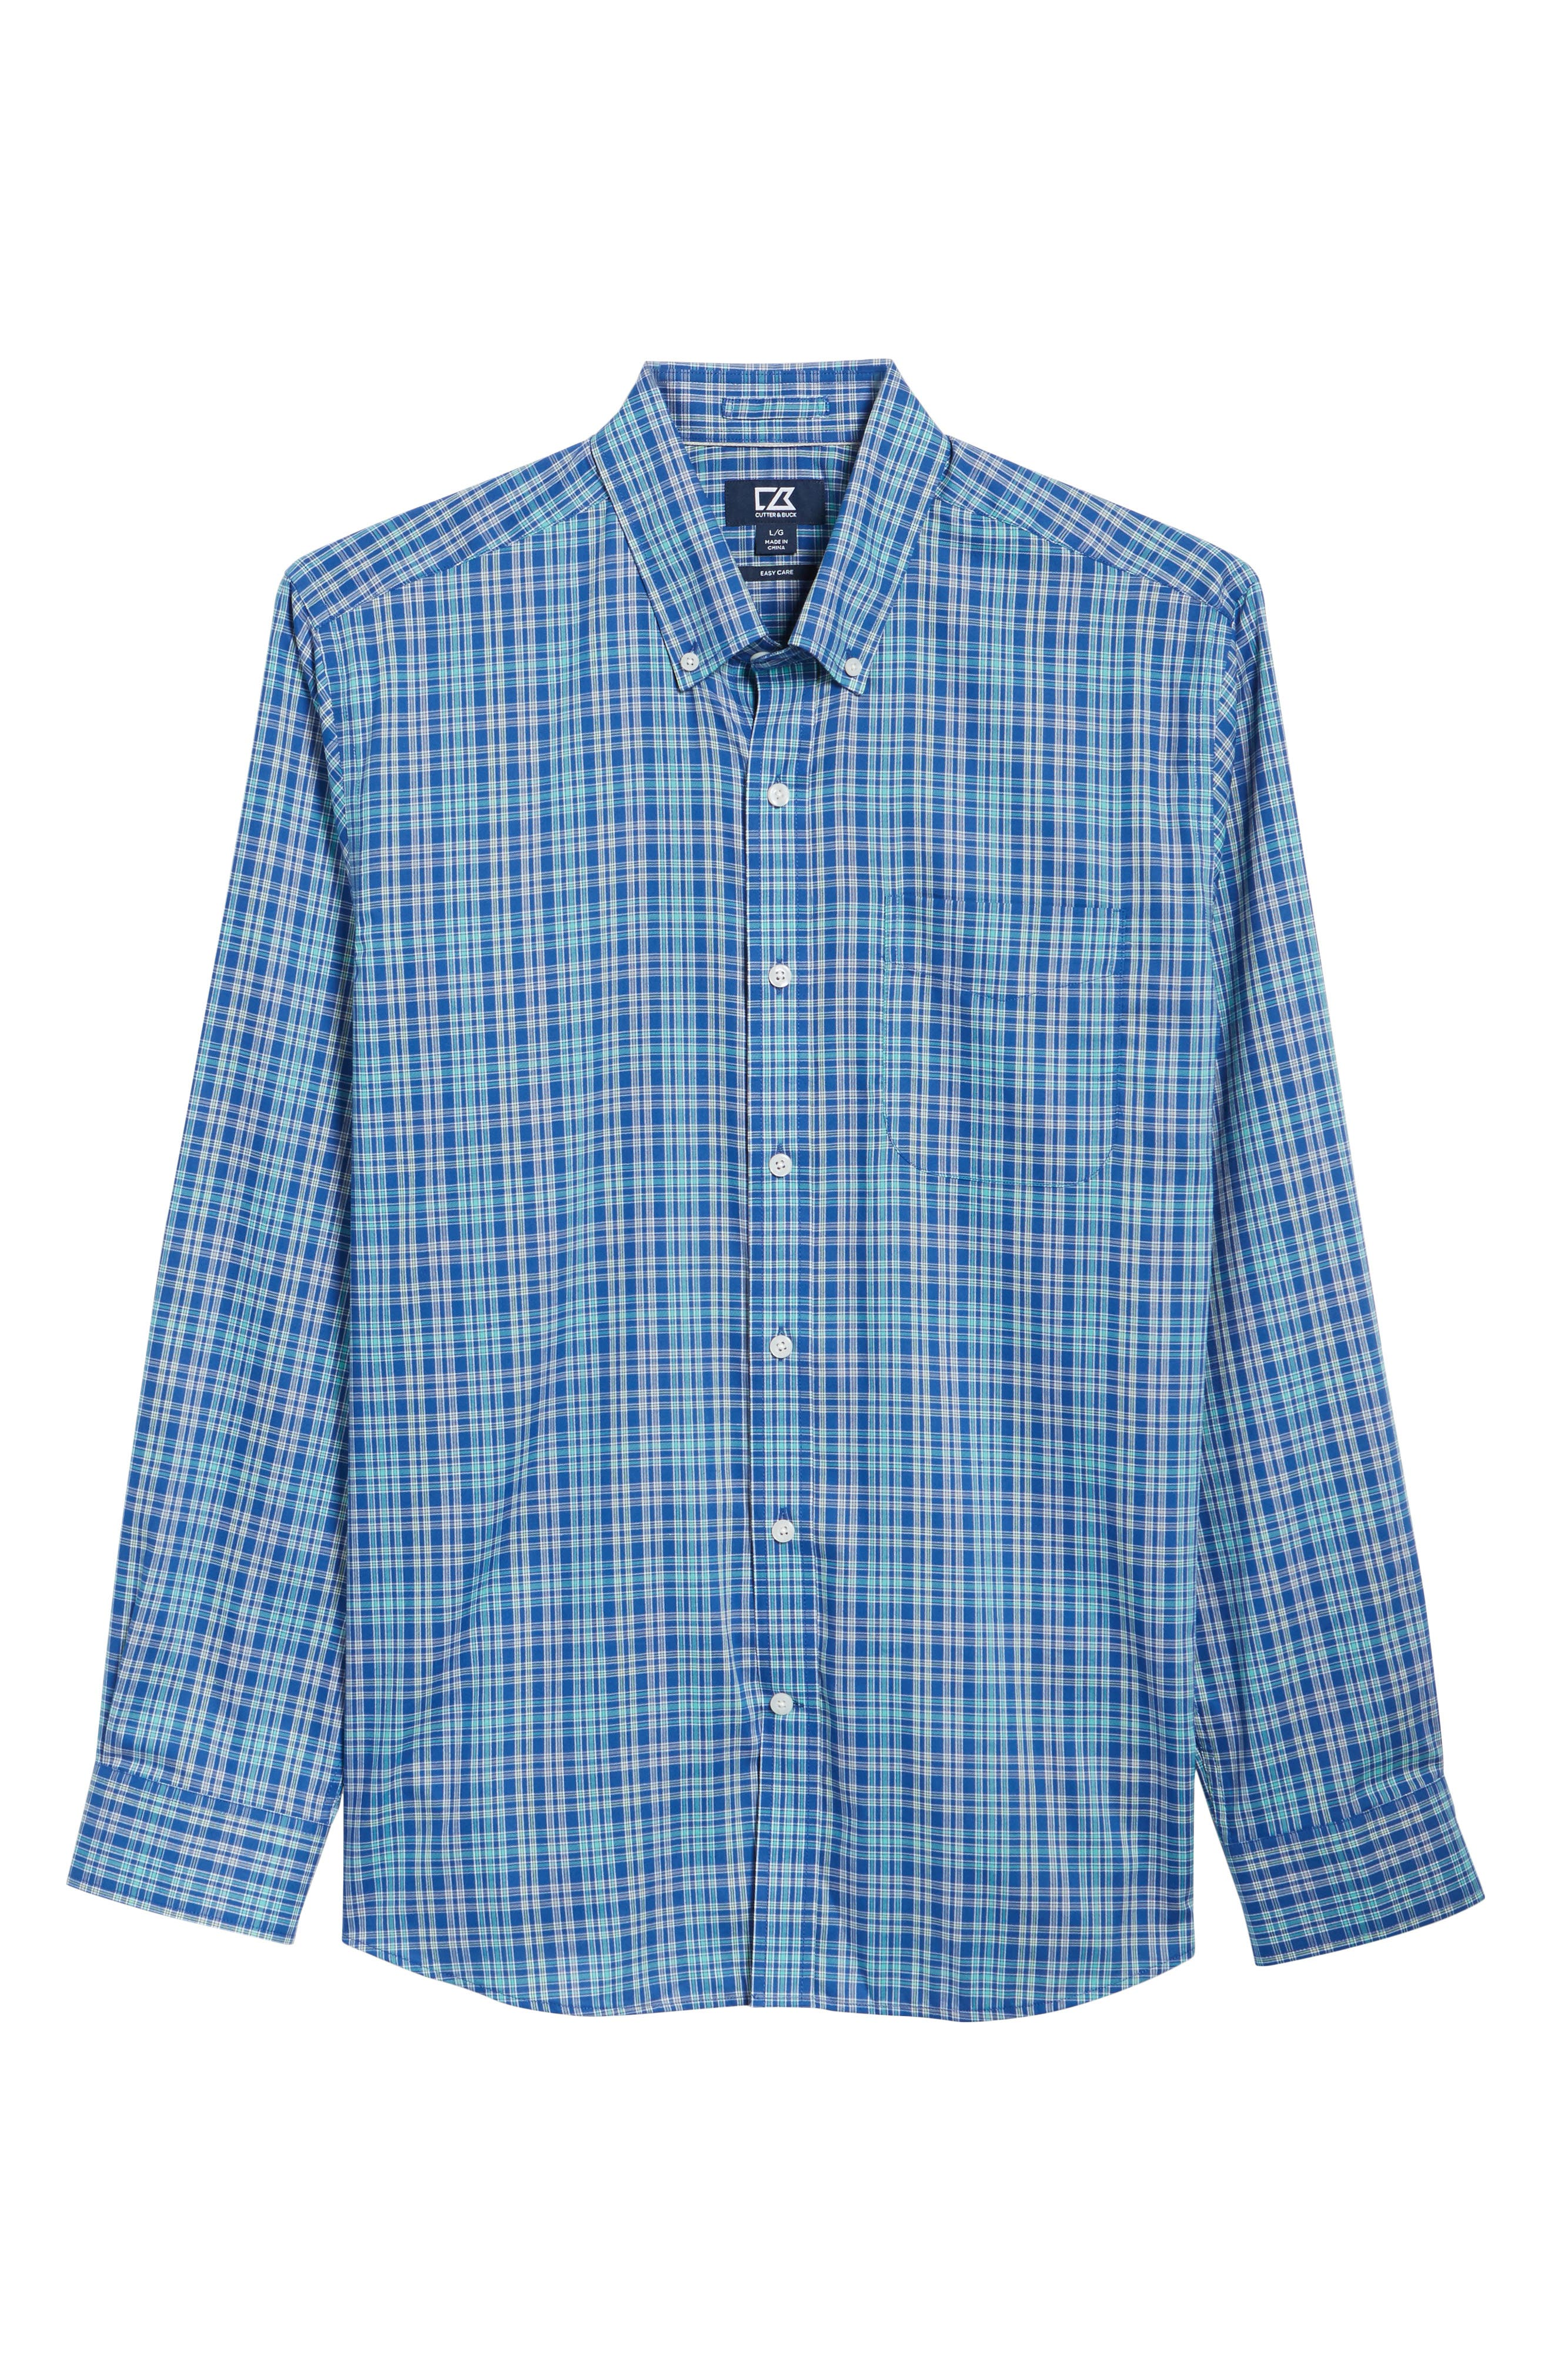 Charlie Easy Care Plaid Sport Shirt,                             Alternate thumbnail 6, color,                             419